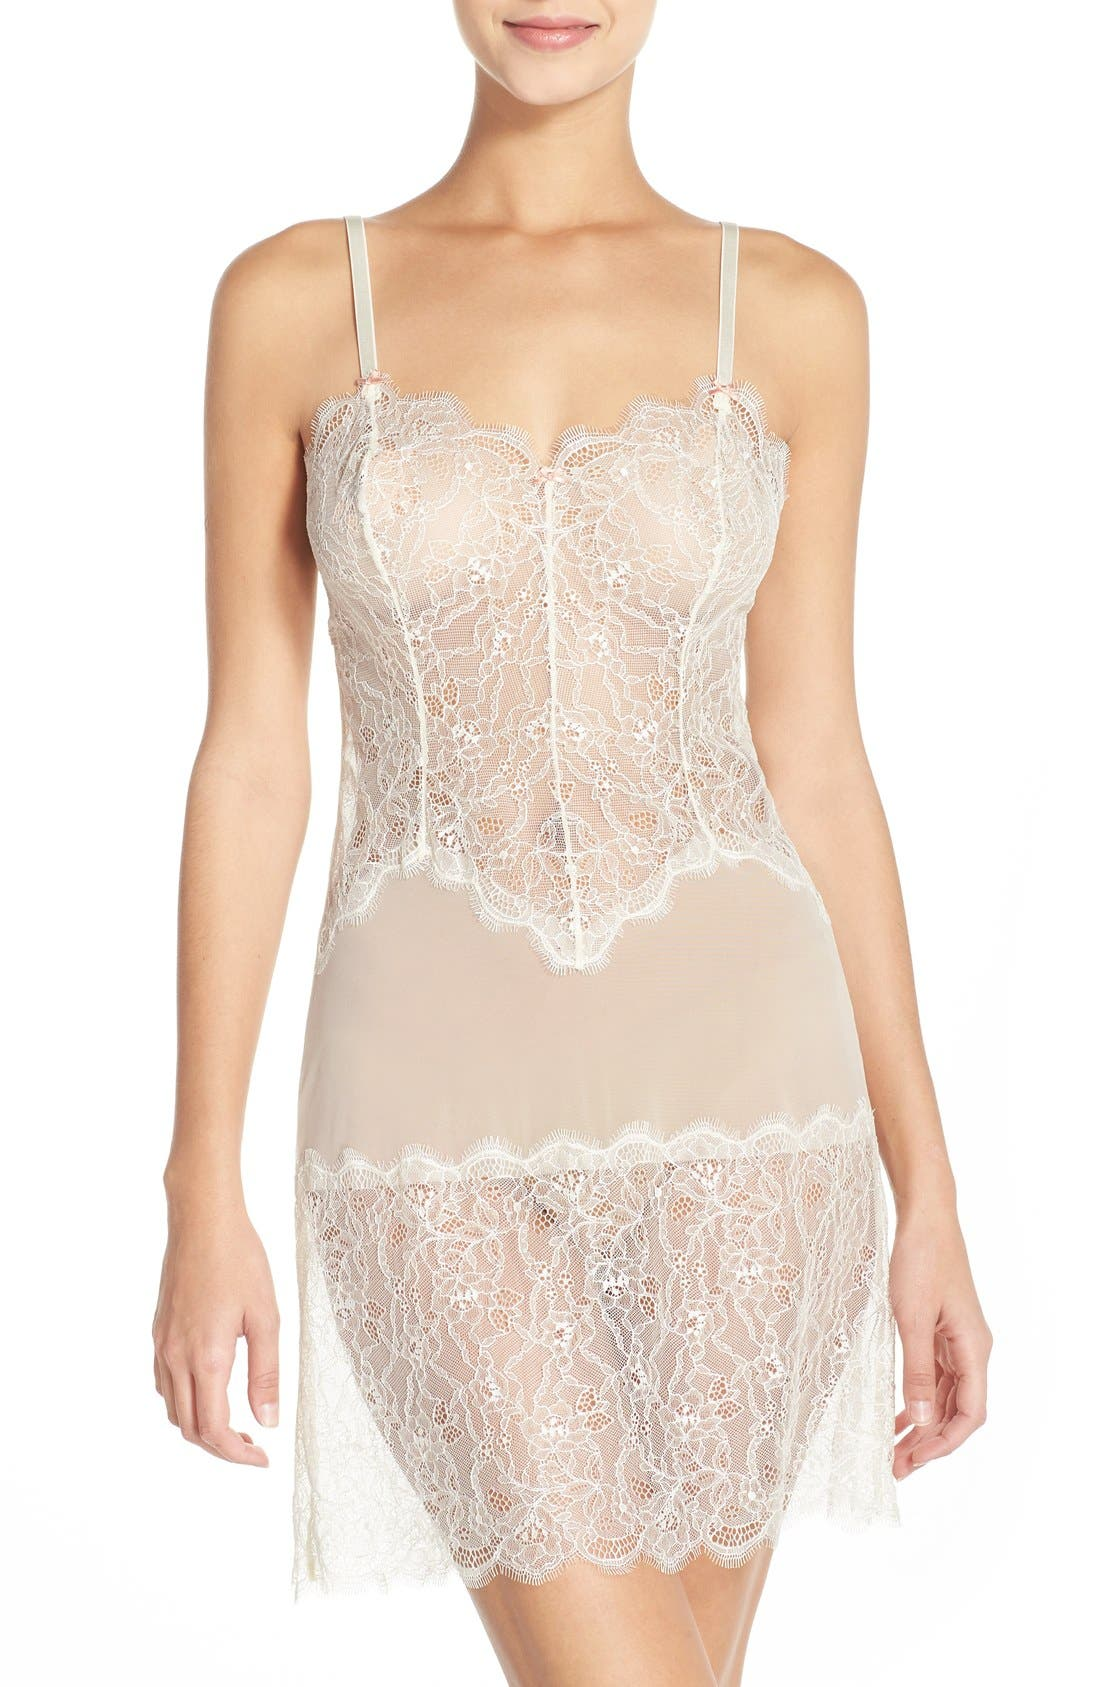 'b.sultry' Chemise,                         Main,                         color, Vanilla Ice